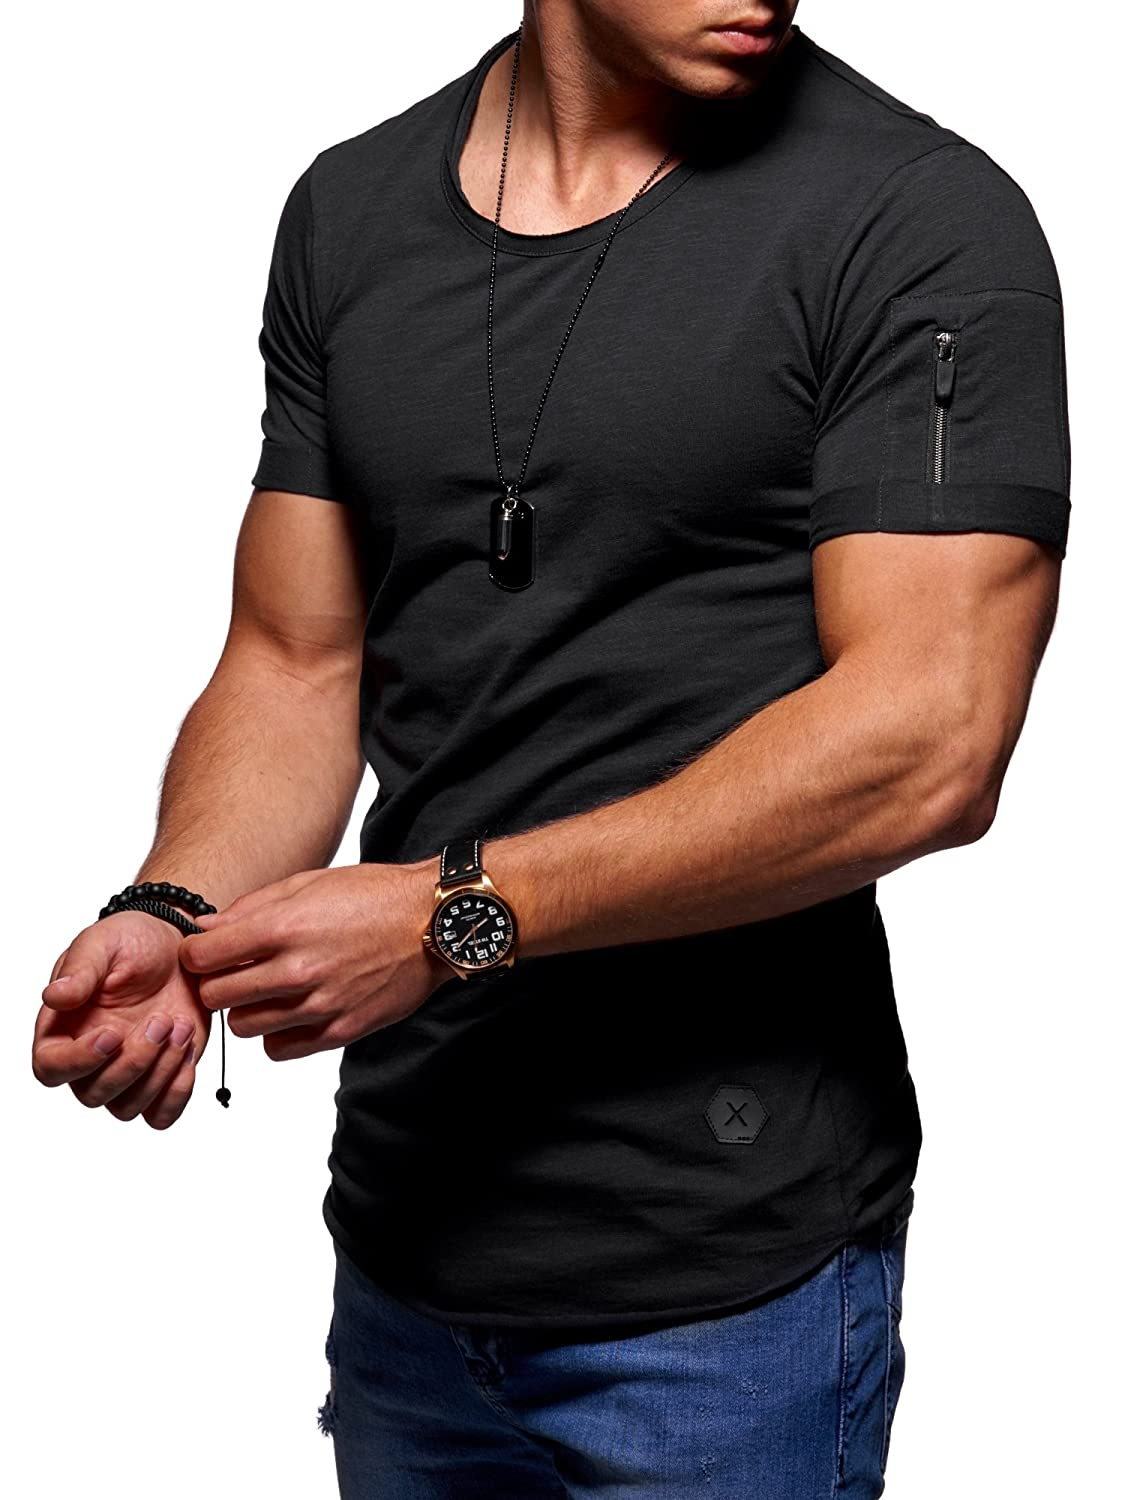 Boiiwant Mens Casual T-Shirt Round Neck Solid Color Short Sleeve Tops Slim Fit Blouse